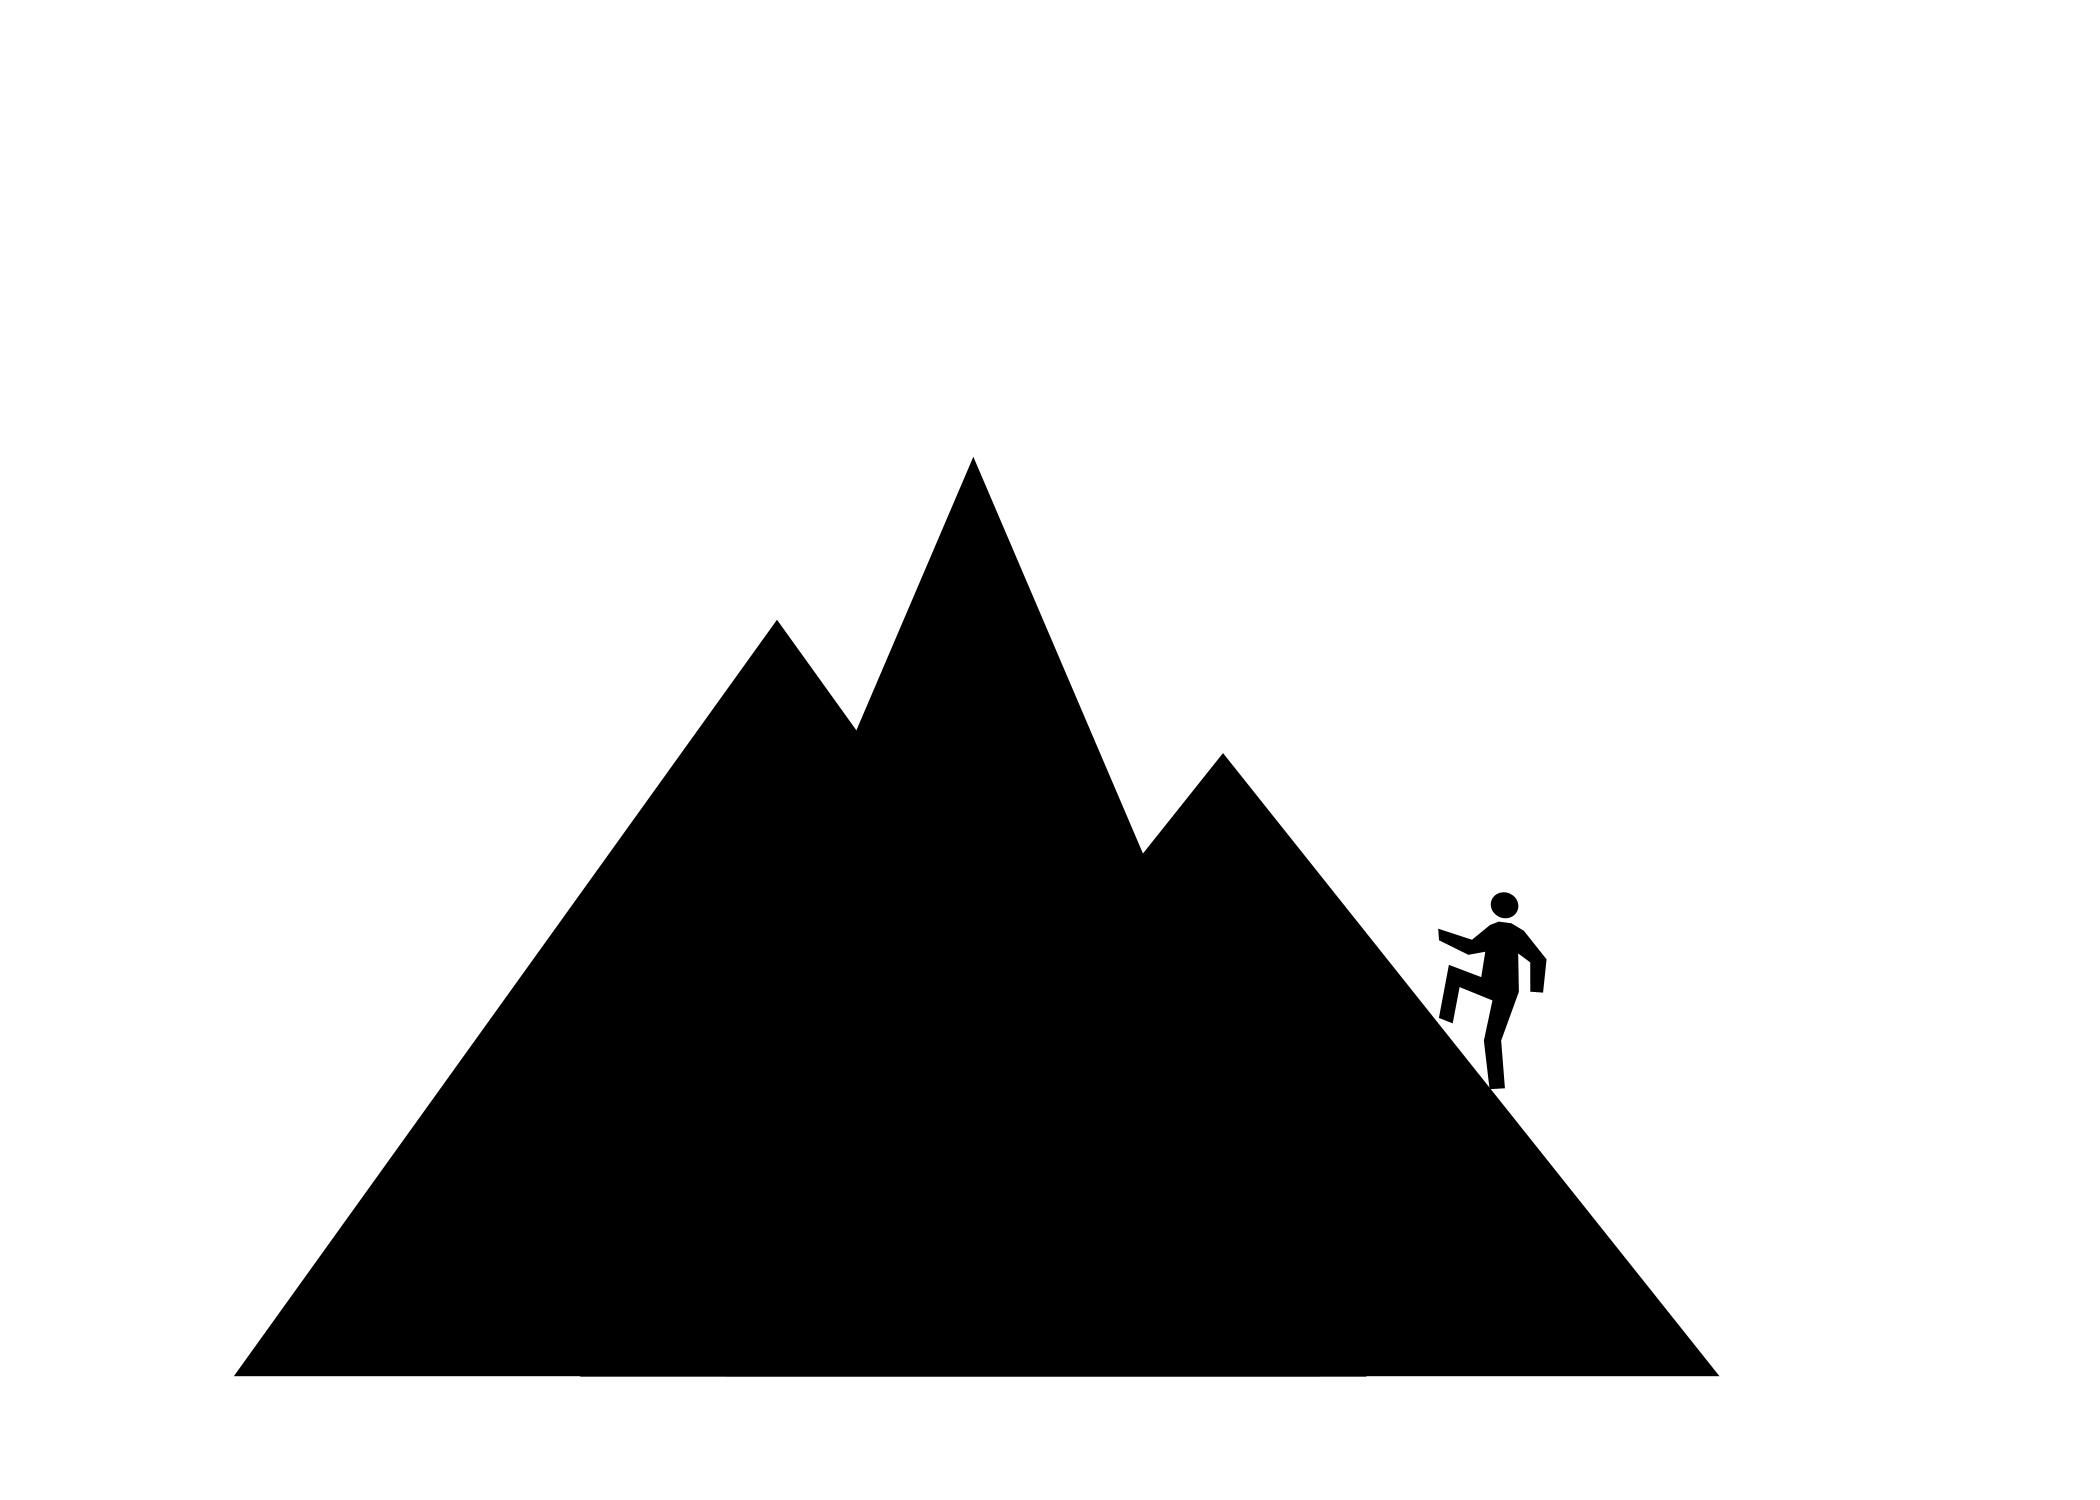 2100x1500 Best Hd Mountain Climbing Silhouette Clipart Free Photos